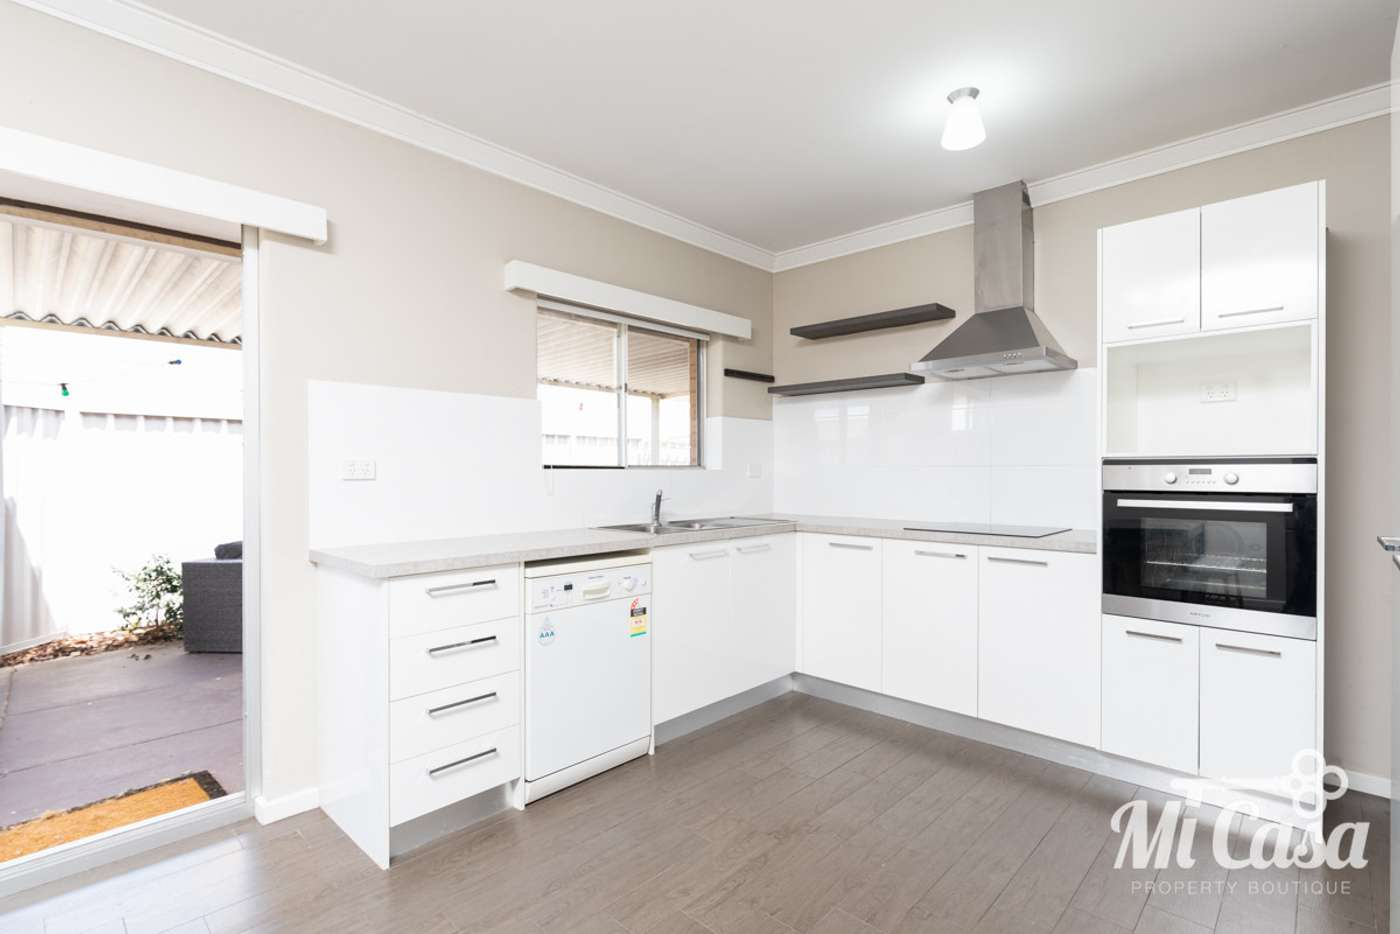 Sixth view of Homely house listing, 47 Donaldson Street, Queens Park WA 6107